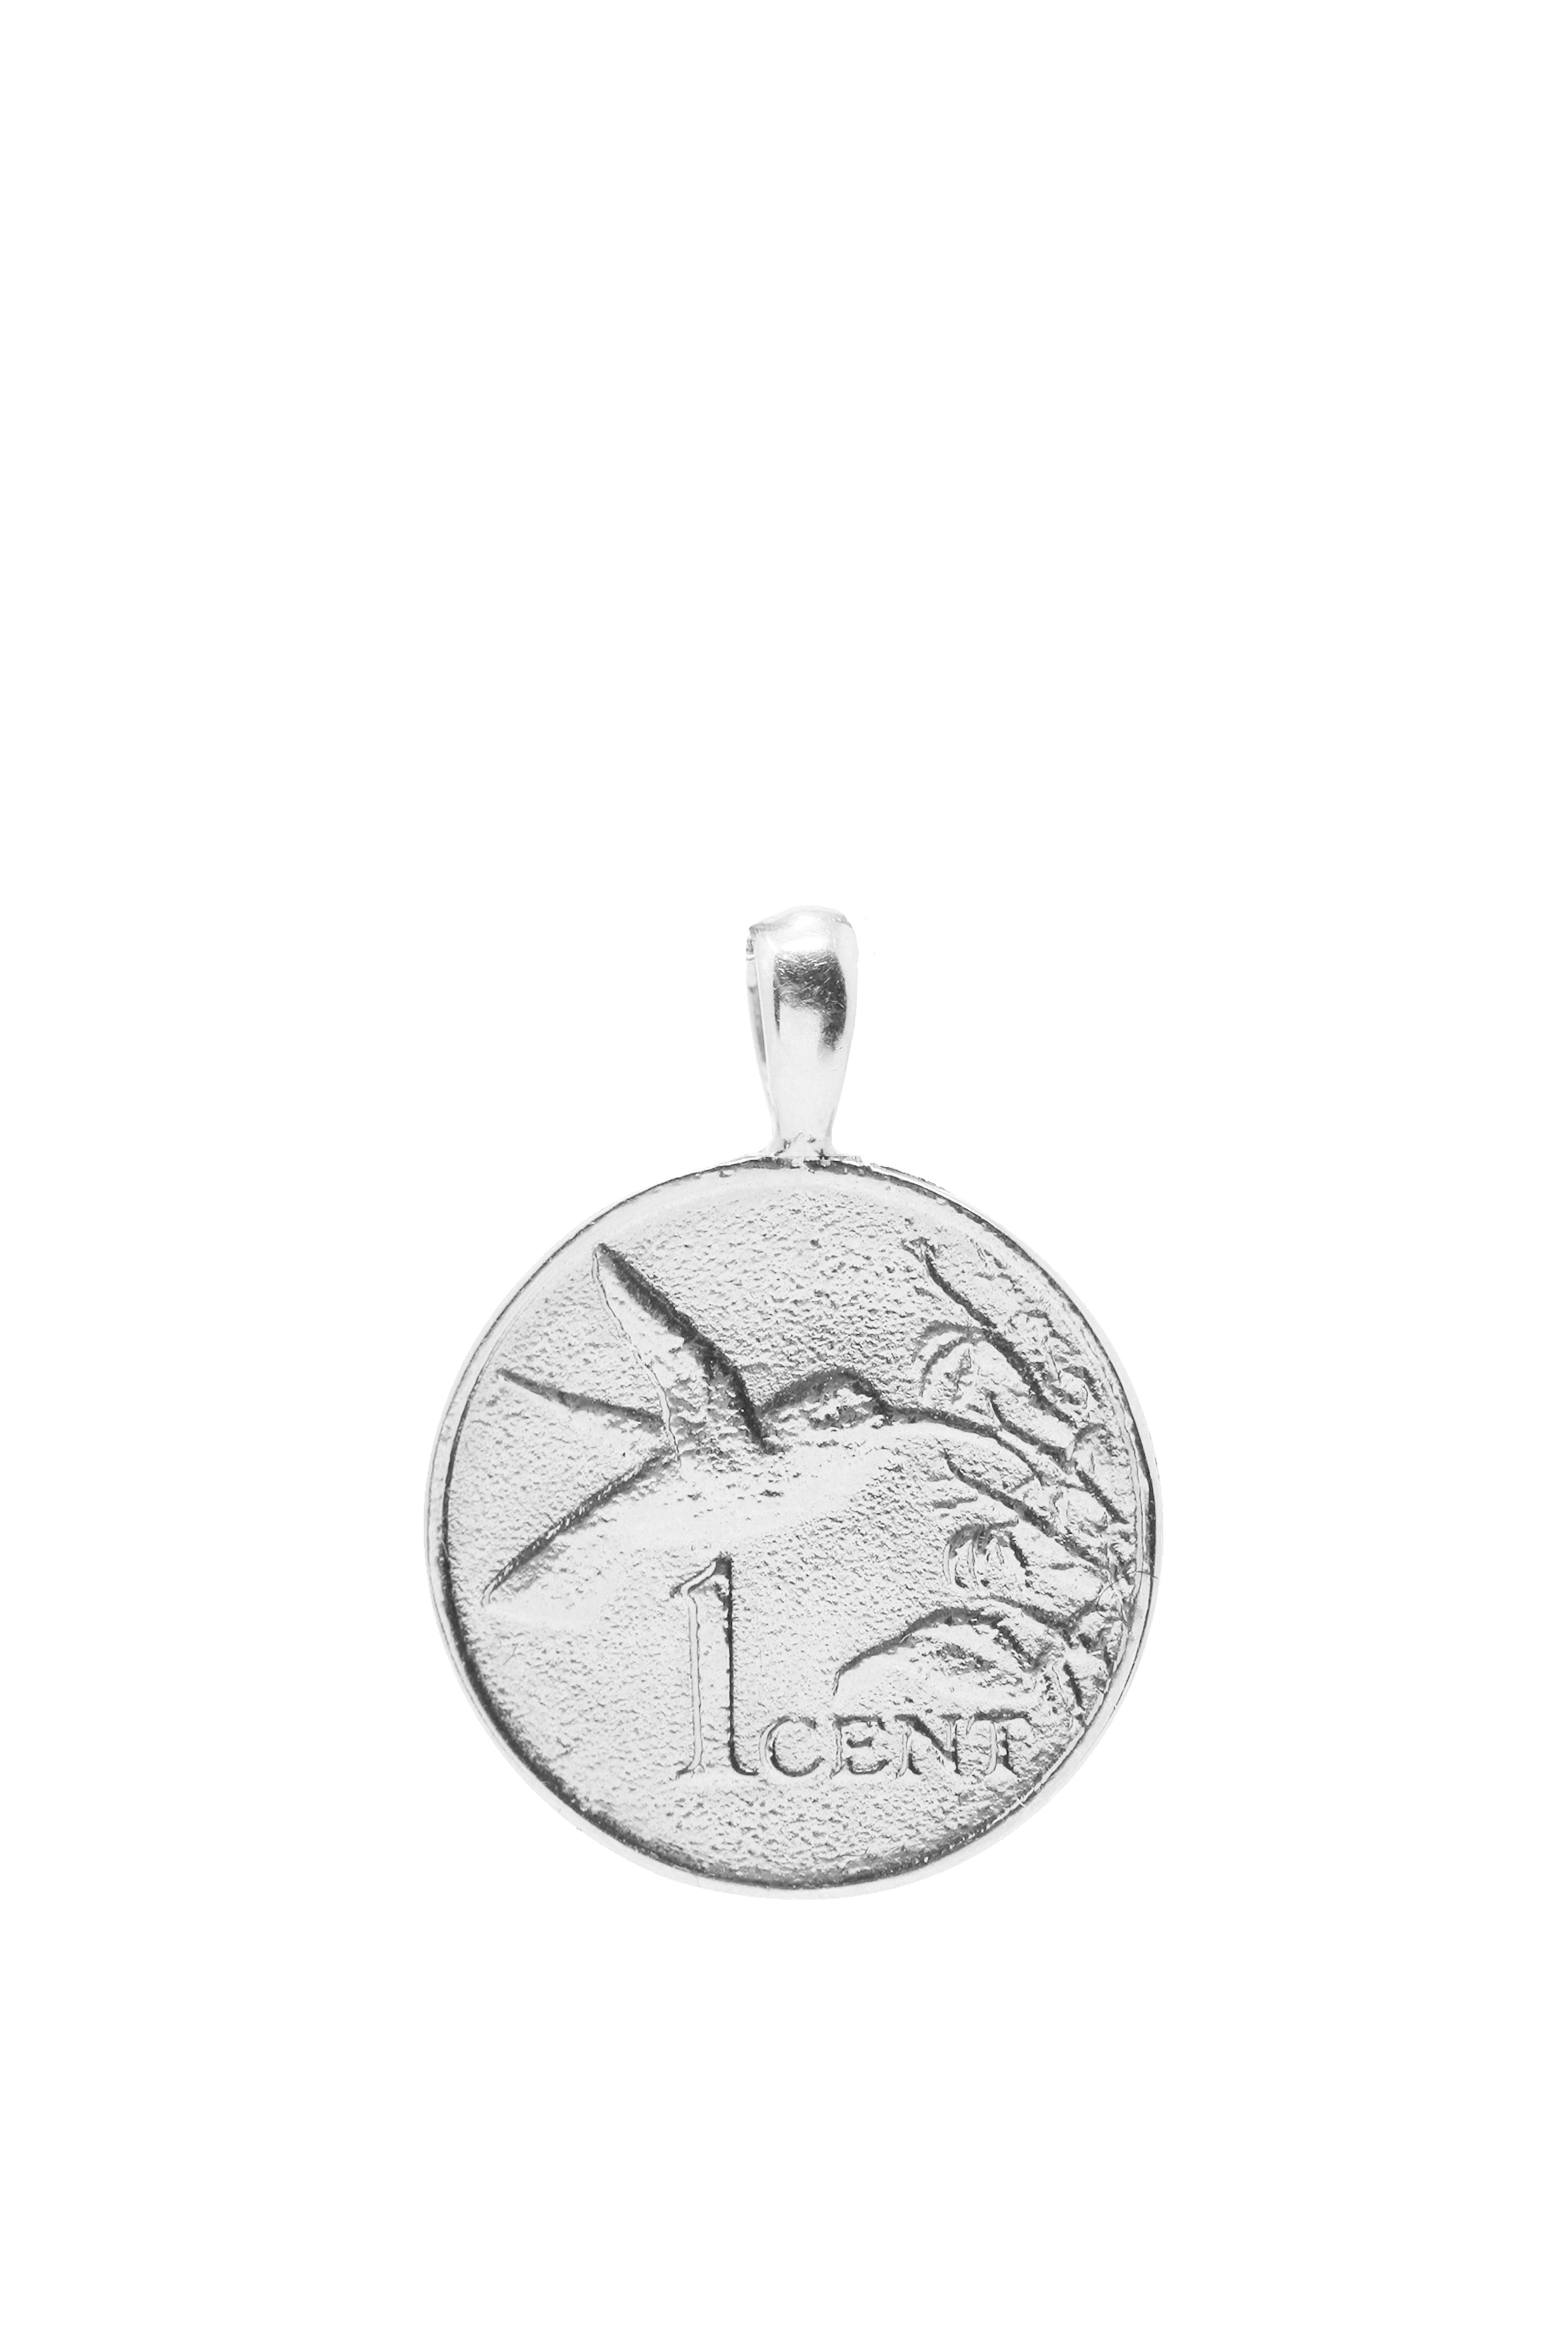 THE TRINIDAD and Tobago Hummingbird Pendant in Silver